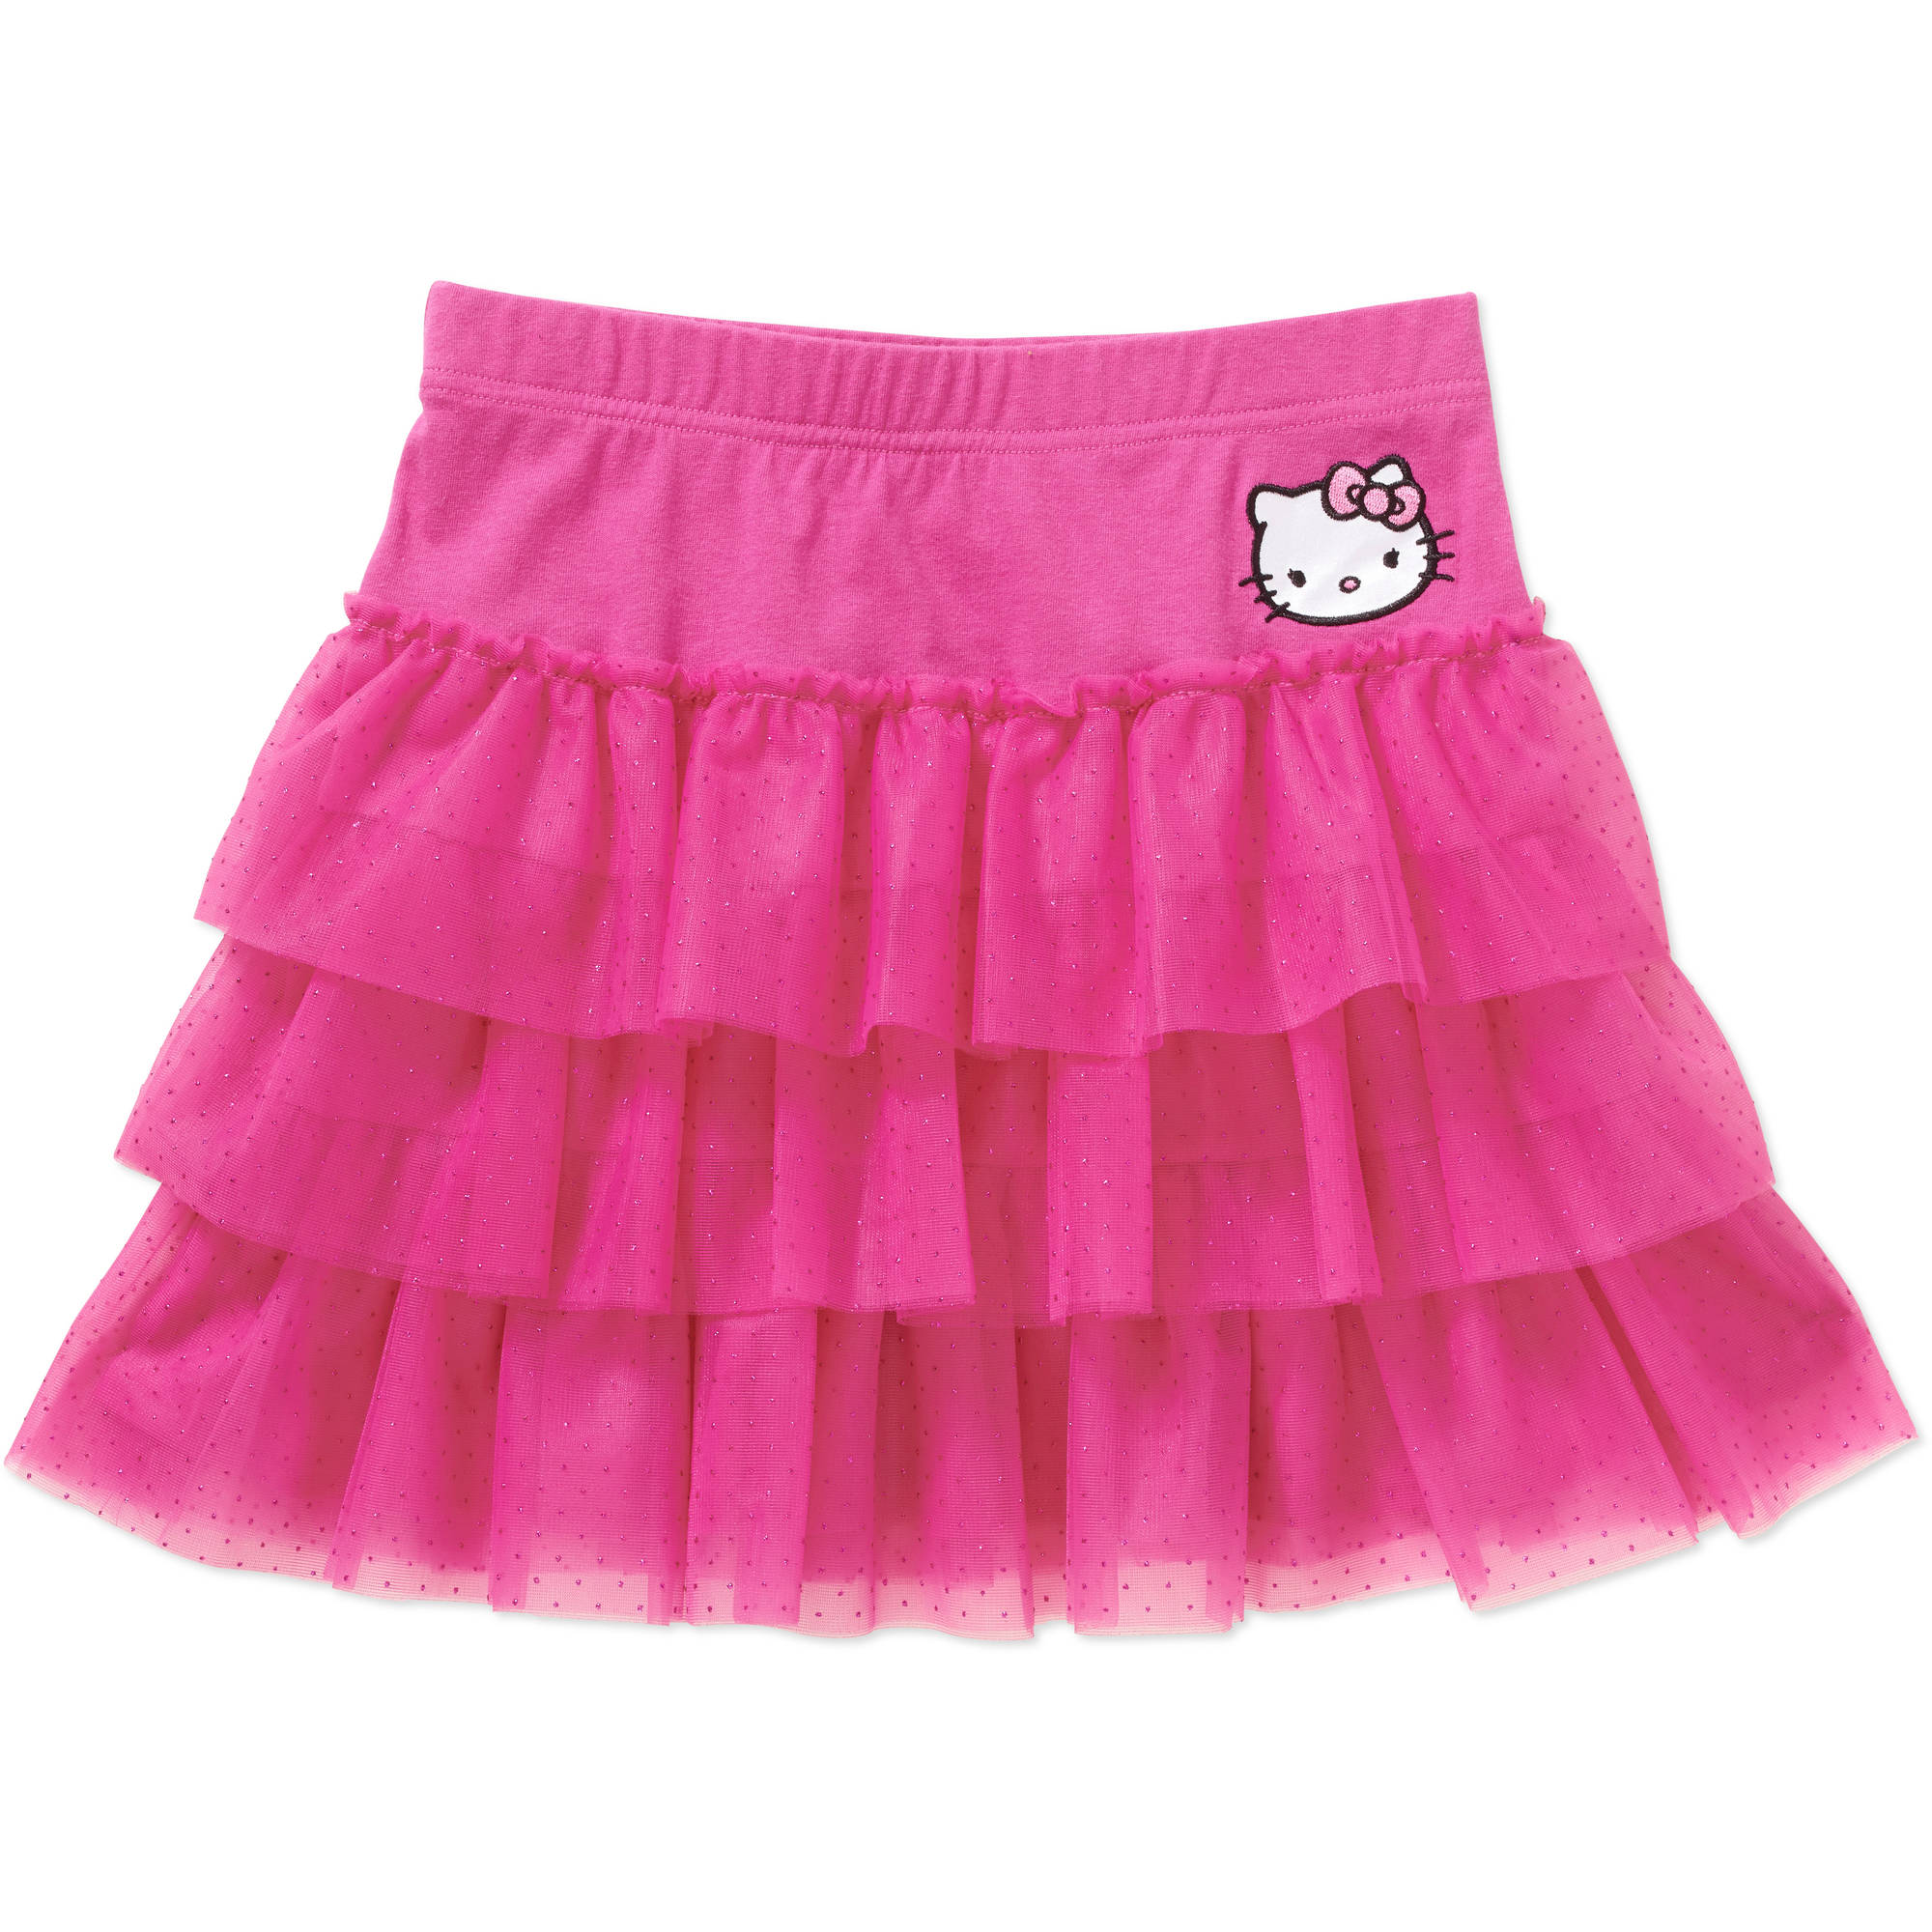 Hello Kitty Girls' Tiered Mesh Skirt